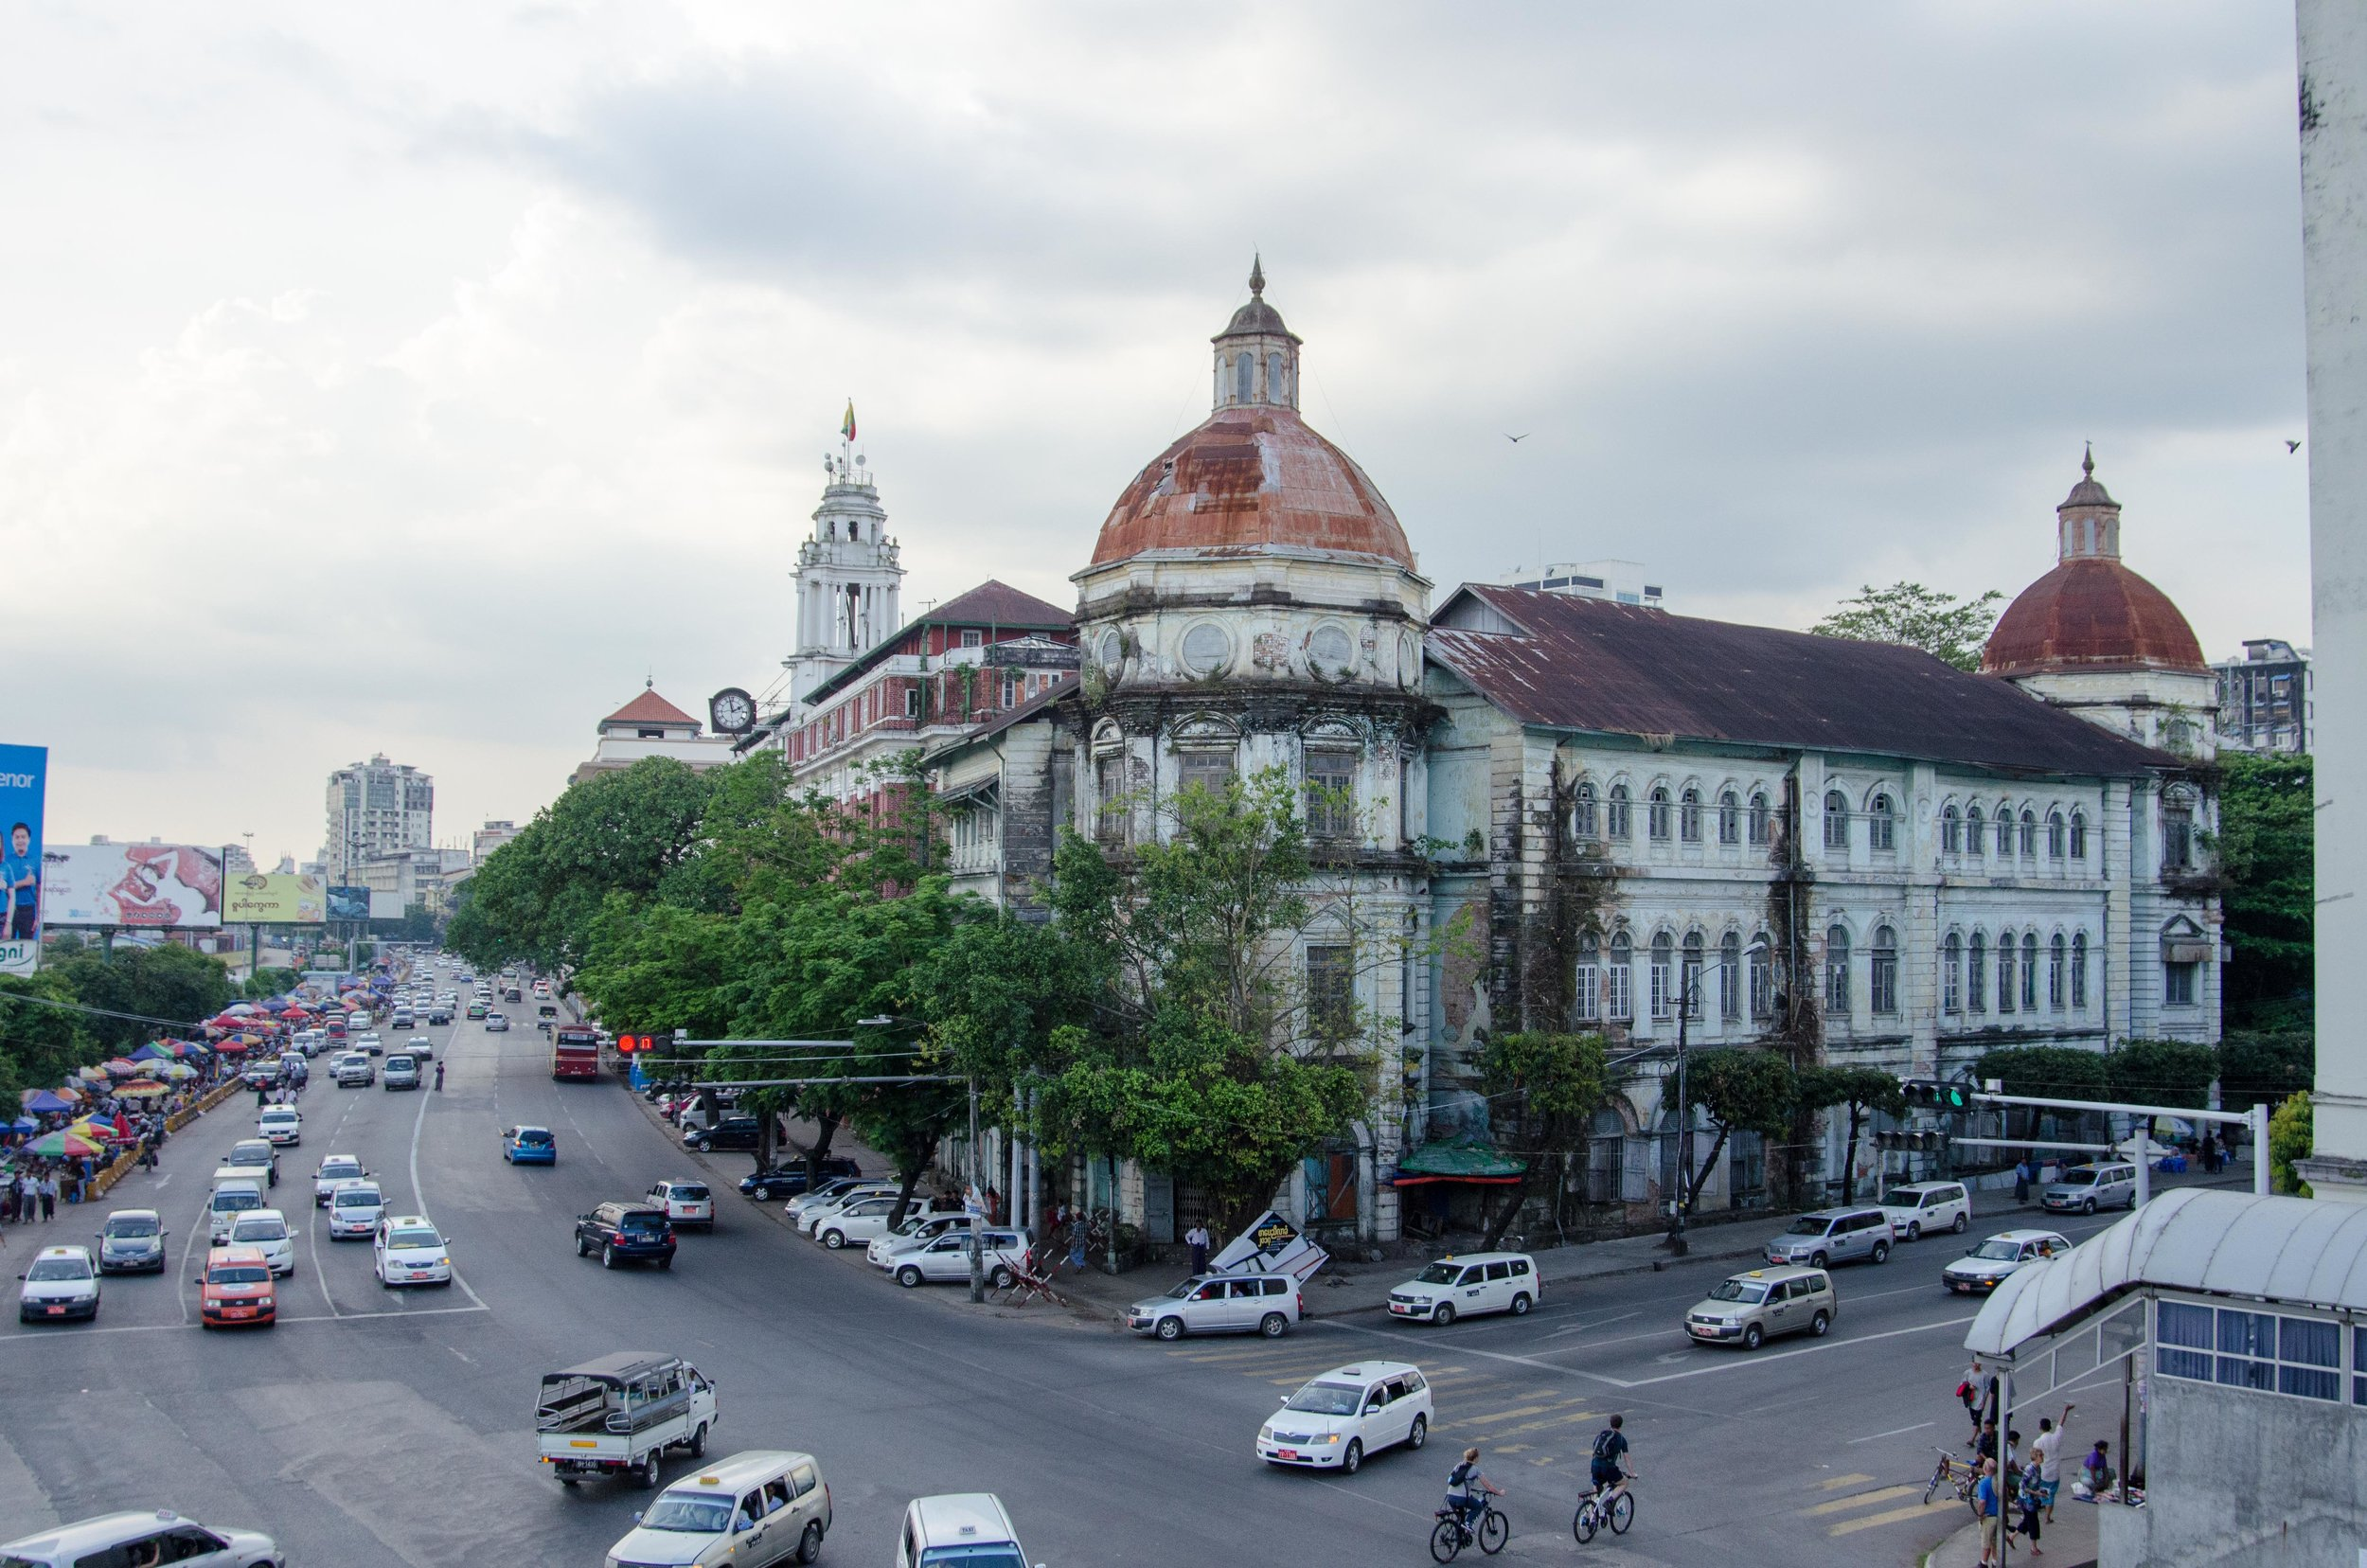 Building 011, Colonial area, Yangon, Myanmar, 26 Nov 2017.jpg